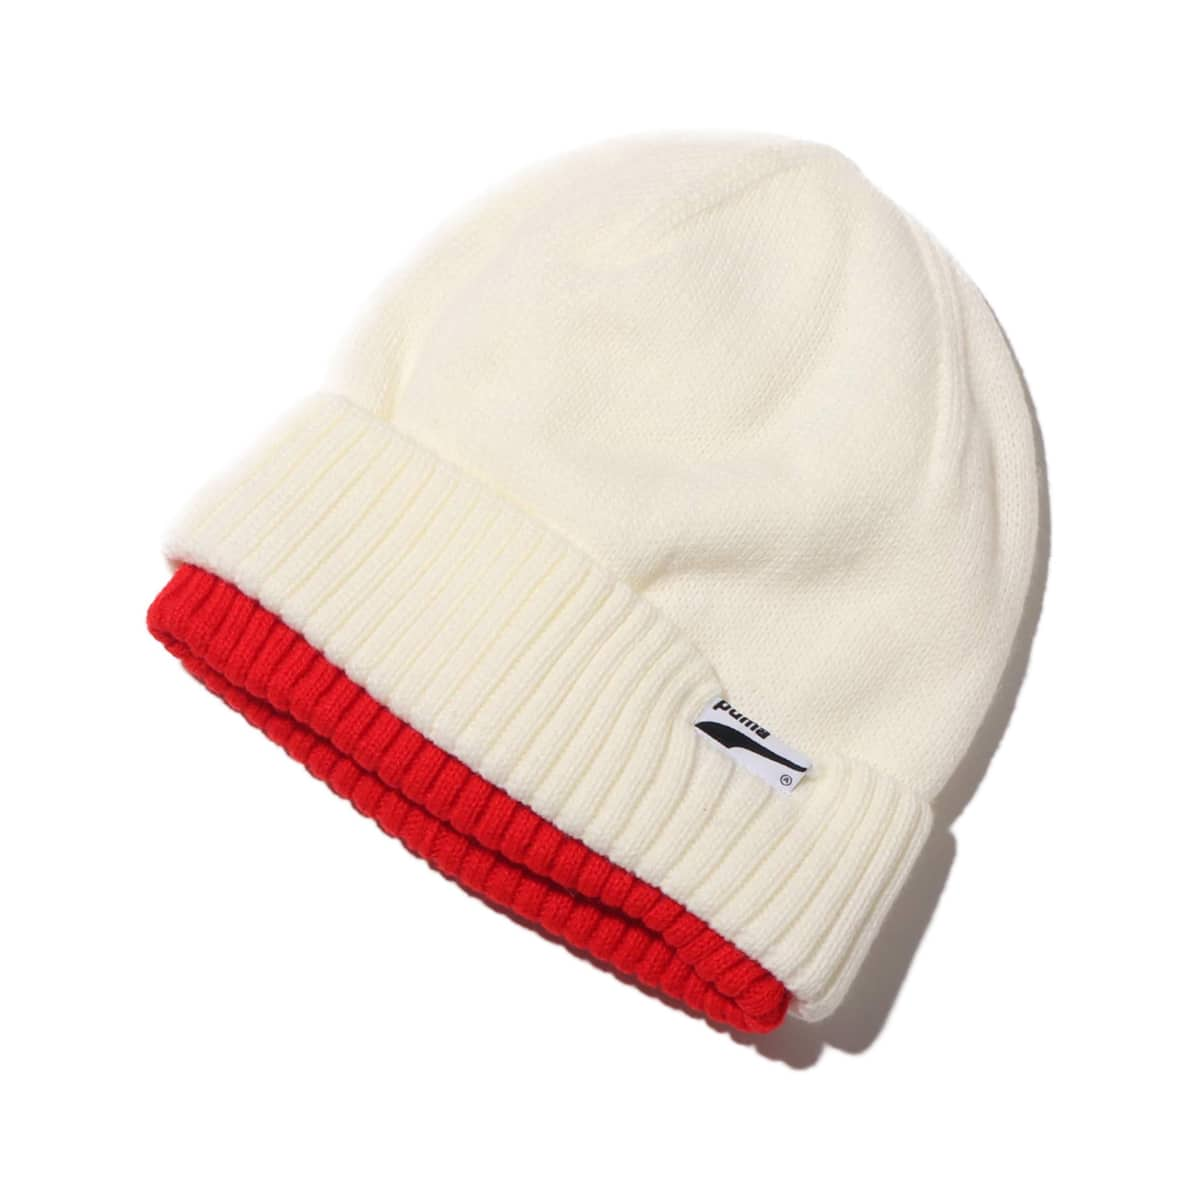 PUMA X ADER ERROR BEANIE PUMA WHITE 19FA-S_photo_large